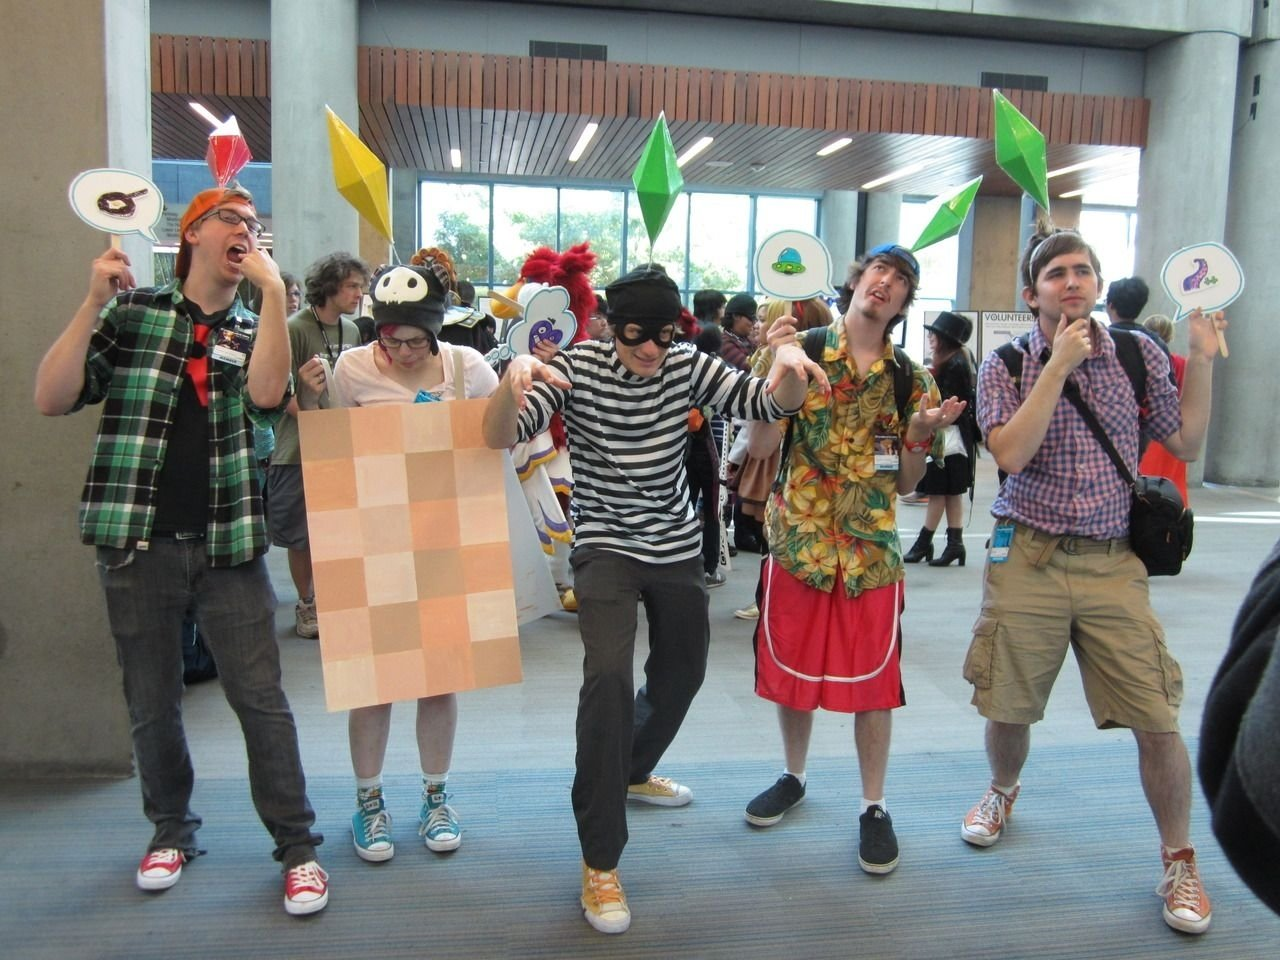 10 Pretty Comic Con Costume Ideas For Guys the sims cosplay haha this is great potential comic con costume 1